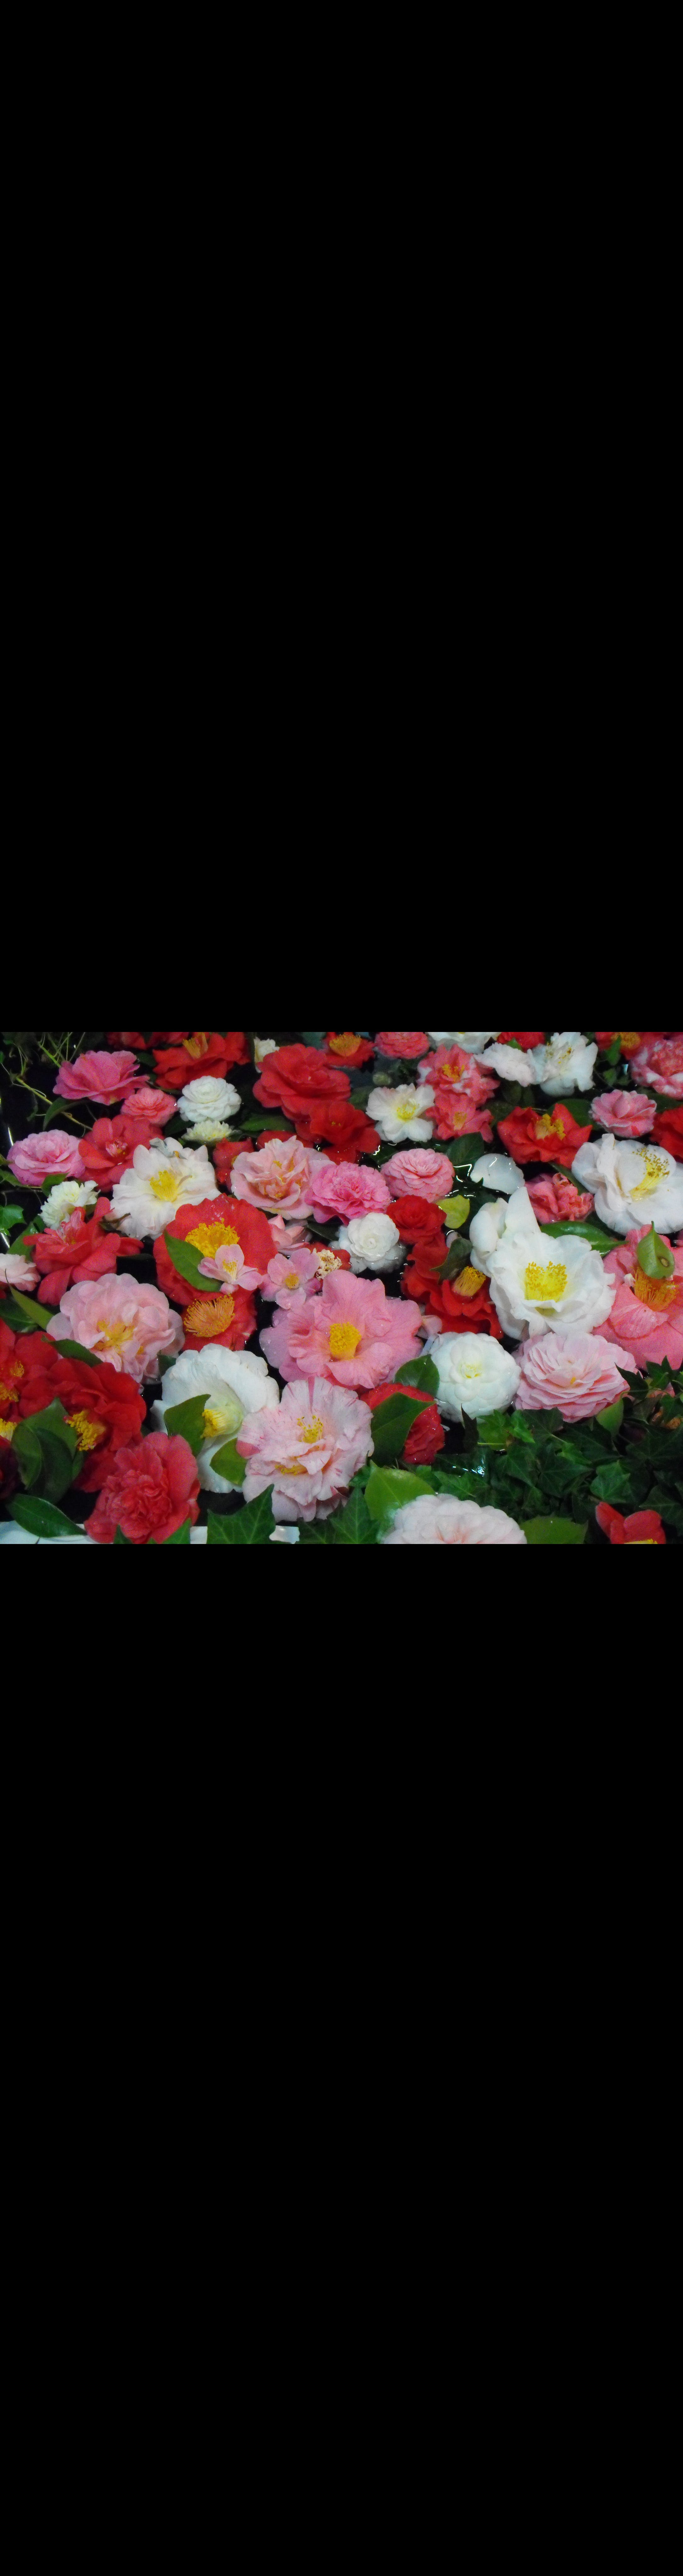 Camellia's Australia National Camellia Show - Wagga Wagga Accommodation